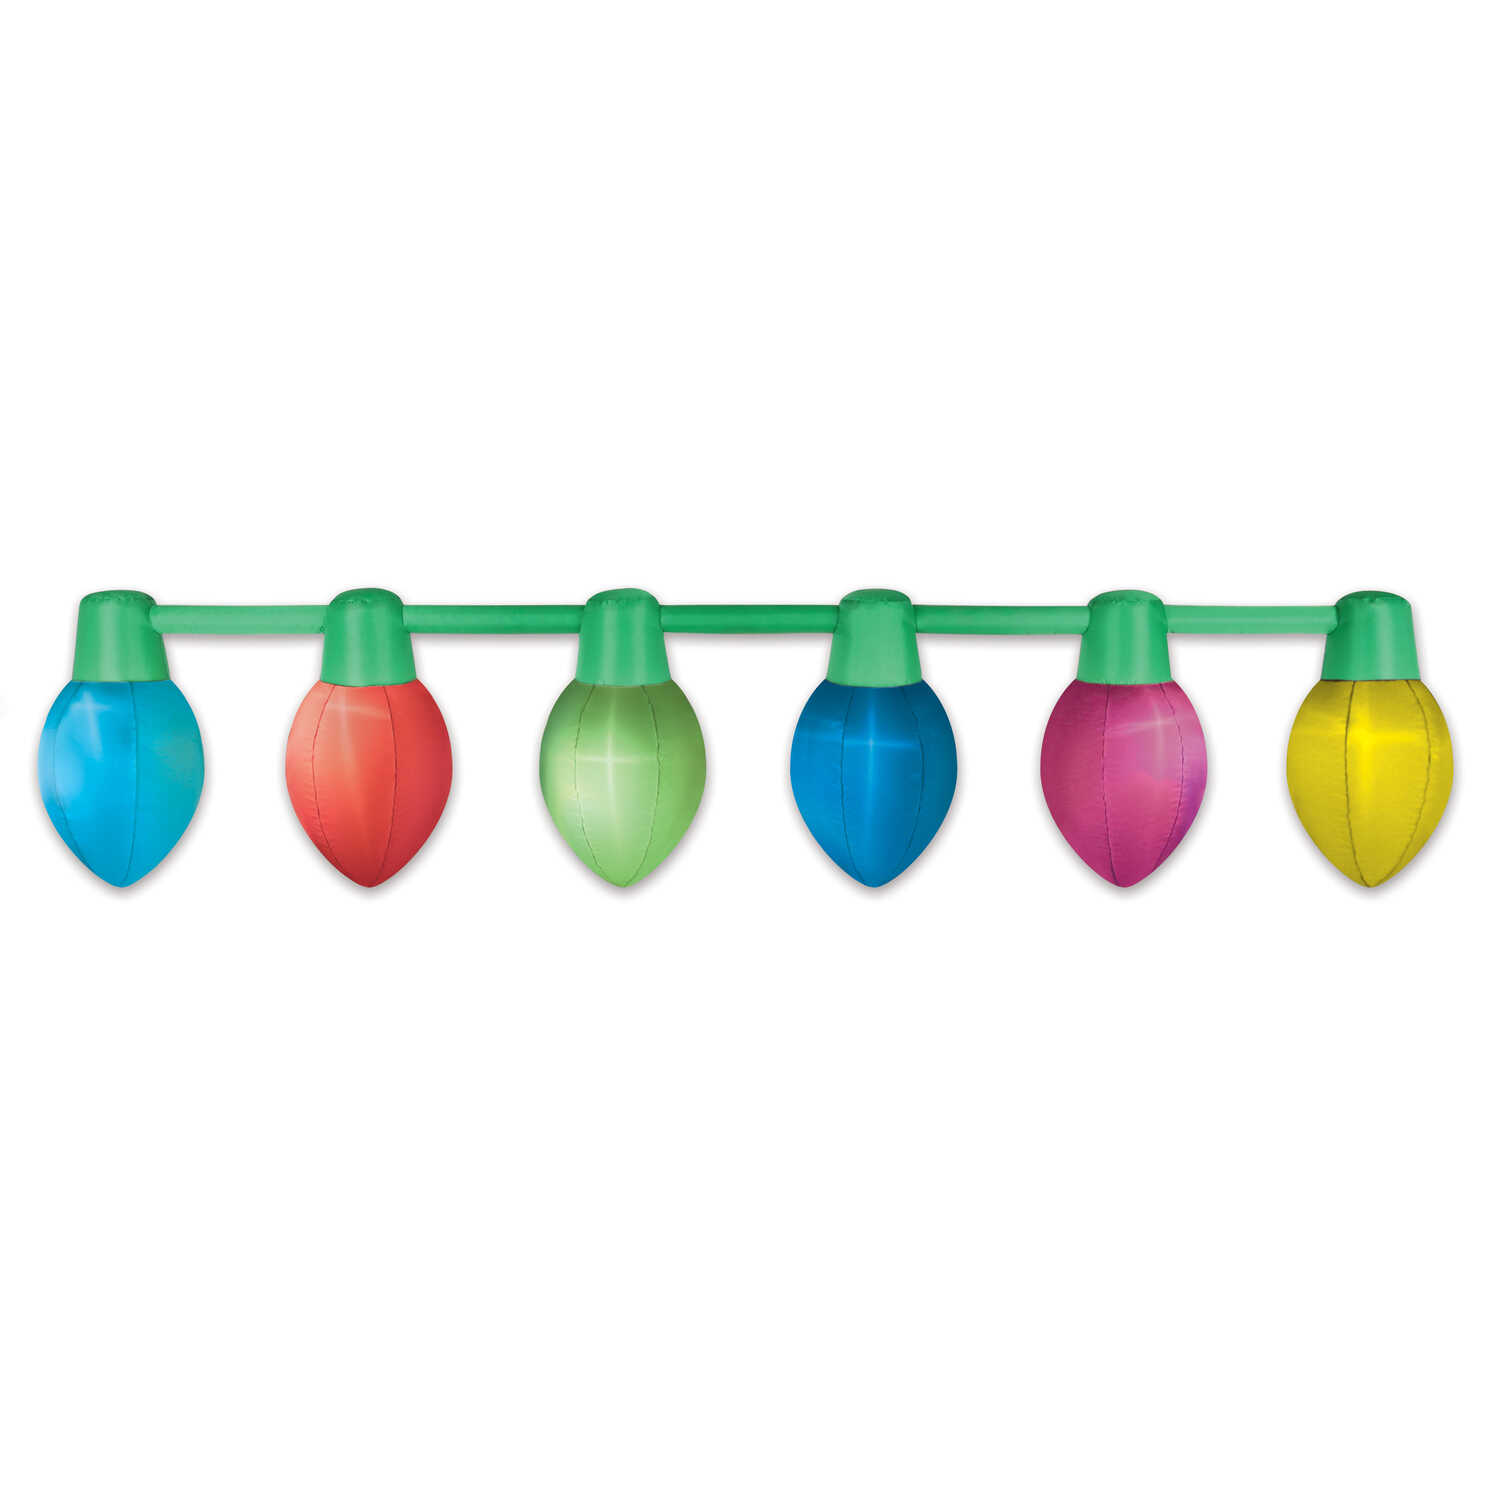 Occasions  Parade Lights  Christmas Inflatable  Multicolored  1 each Polyester